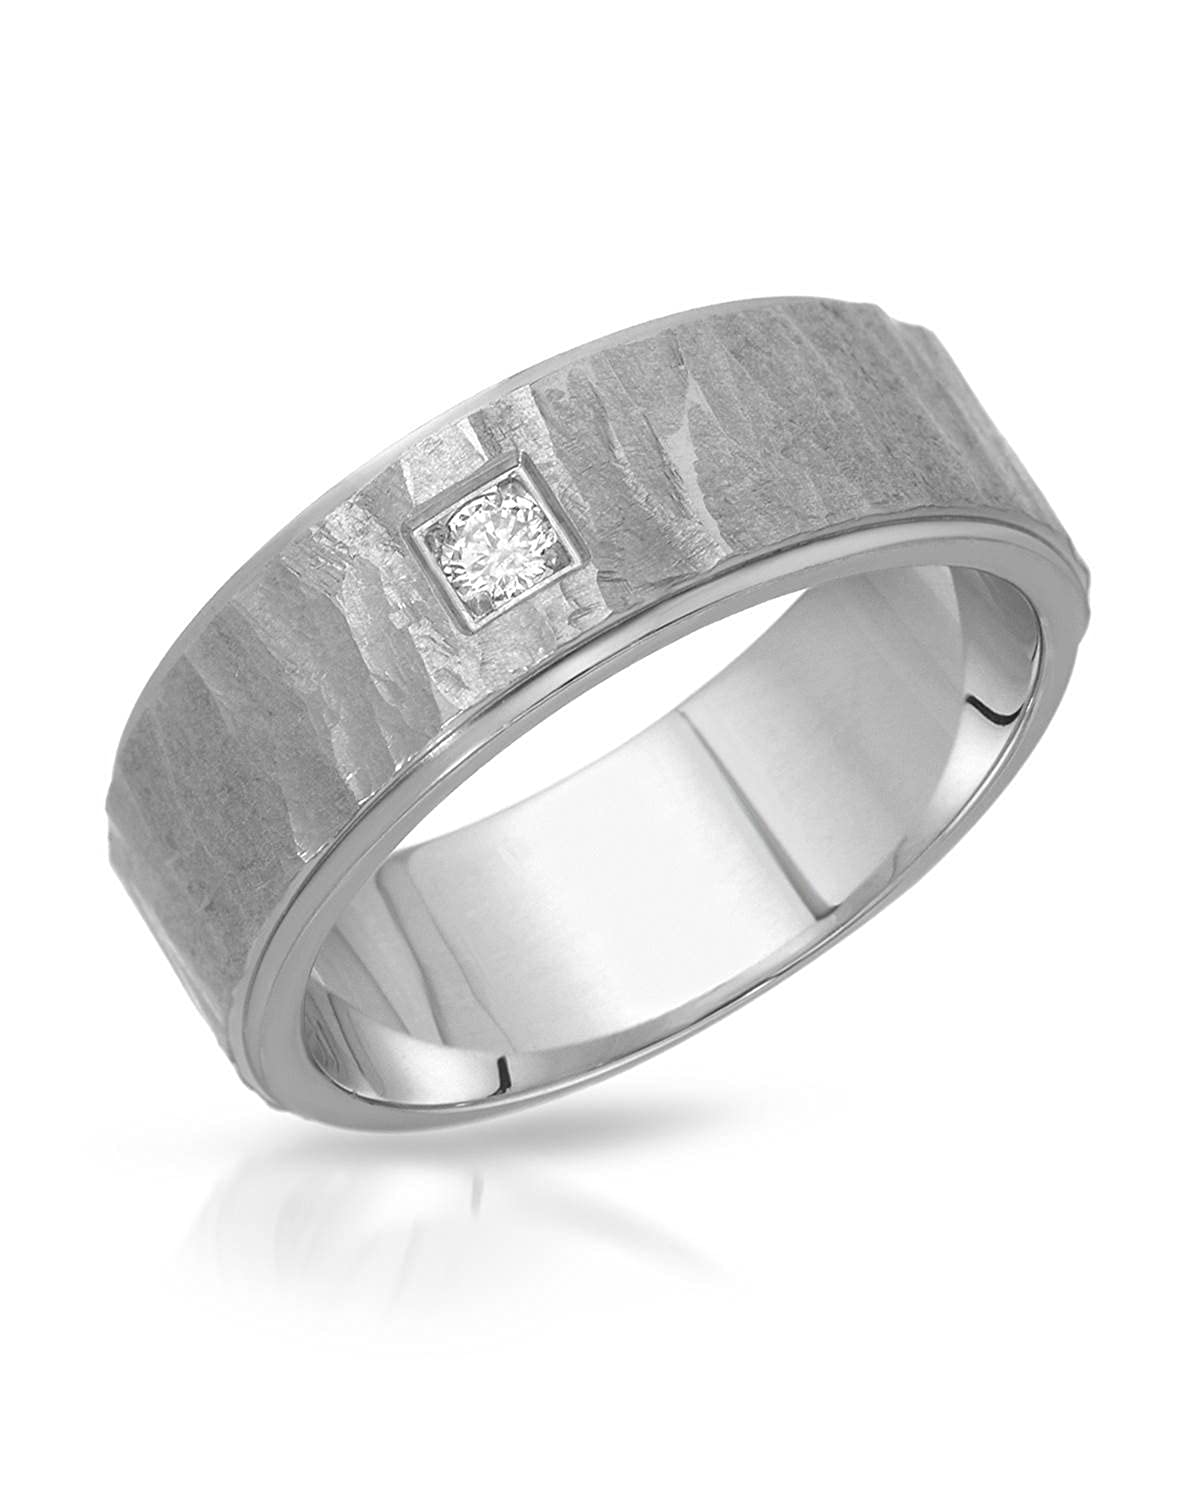 Teno Stainless Steel 0.04 CTW Color F, VS1 Diamond Band Unisex Ring. Ring Size 7.5. Total Item weight 5.8 g.